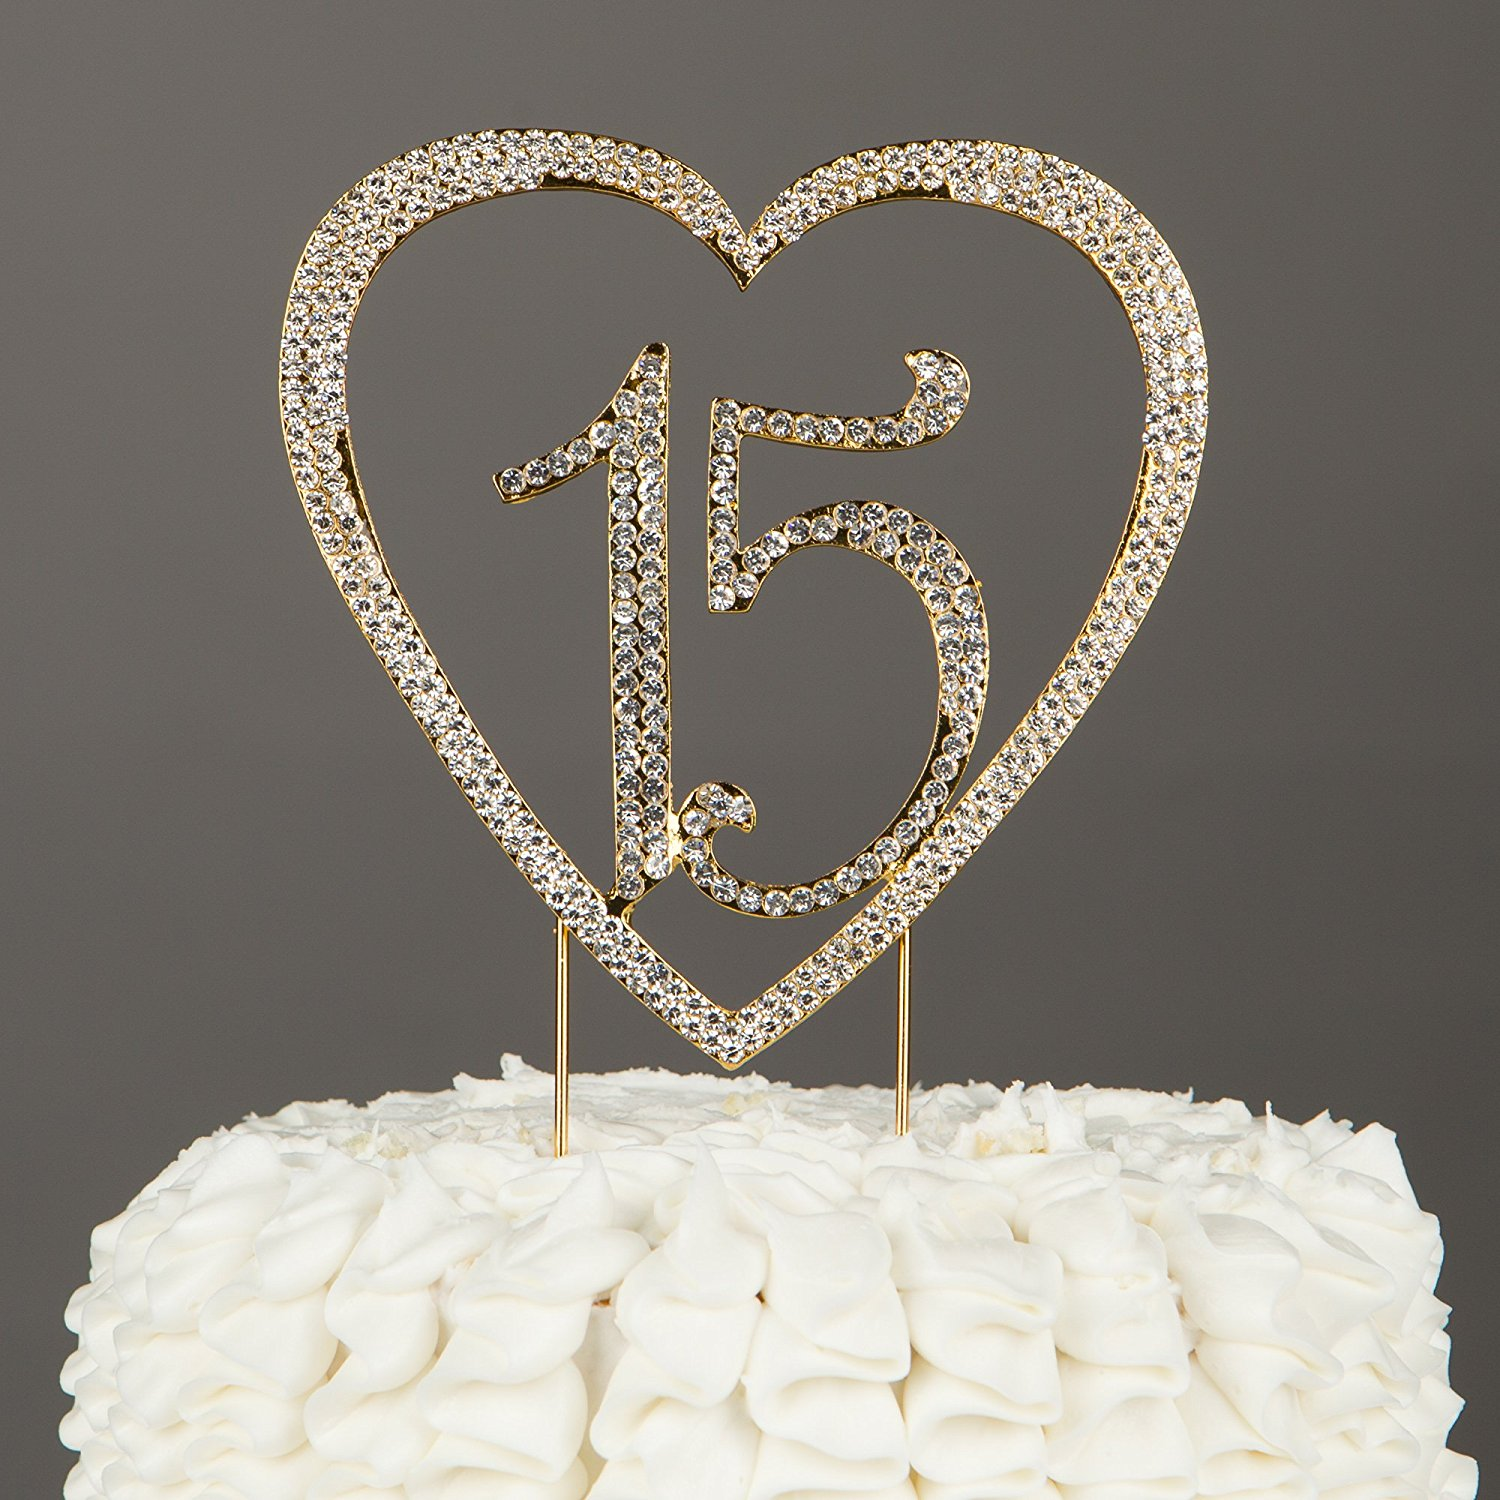 Surprising 15 Heart Cake Topper Gold 15Th Birthday Party Quinceanera Personalised Birthday Cards Veneteletsinfo